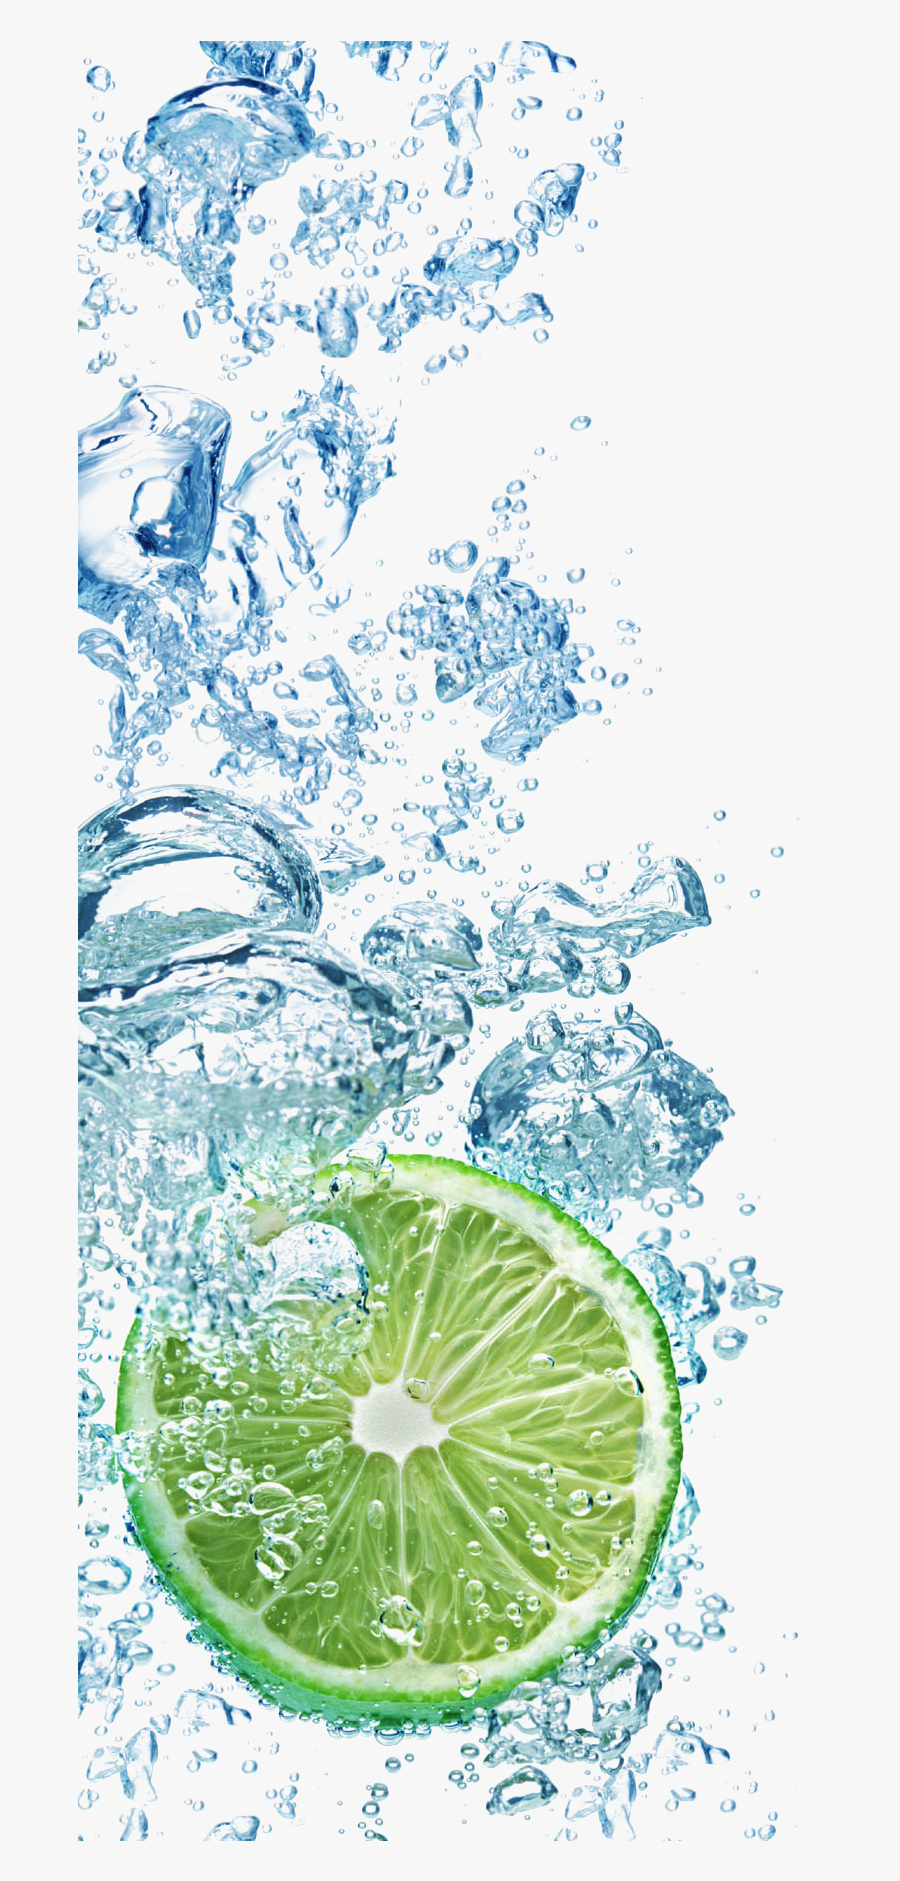 And Cubes Lemon With Tea Into Drink Clipart - Ice And Water Png, Transparent Clipart